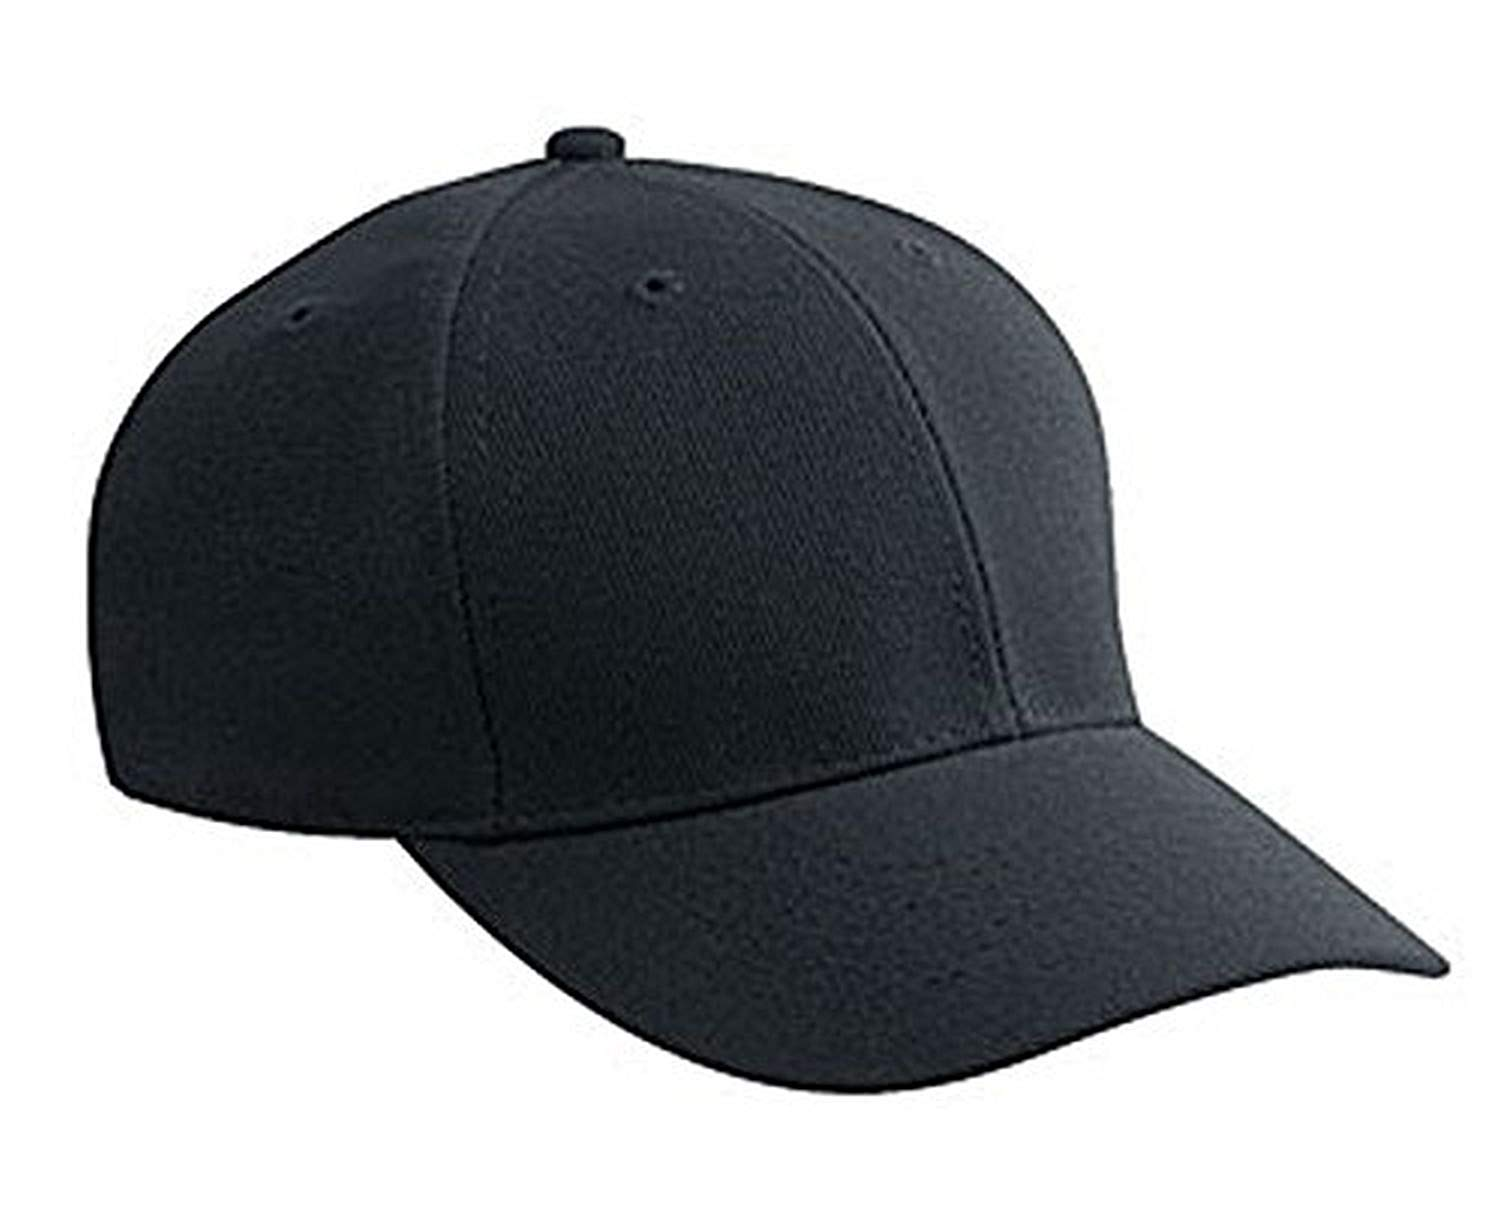 Hats & Caps Shop Wool Blend Low Profile Pro Style Caps - By TheTargetBuys